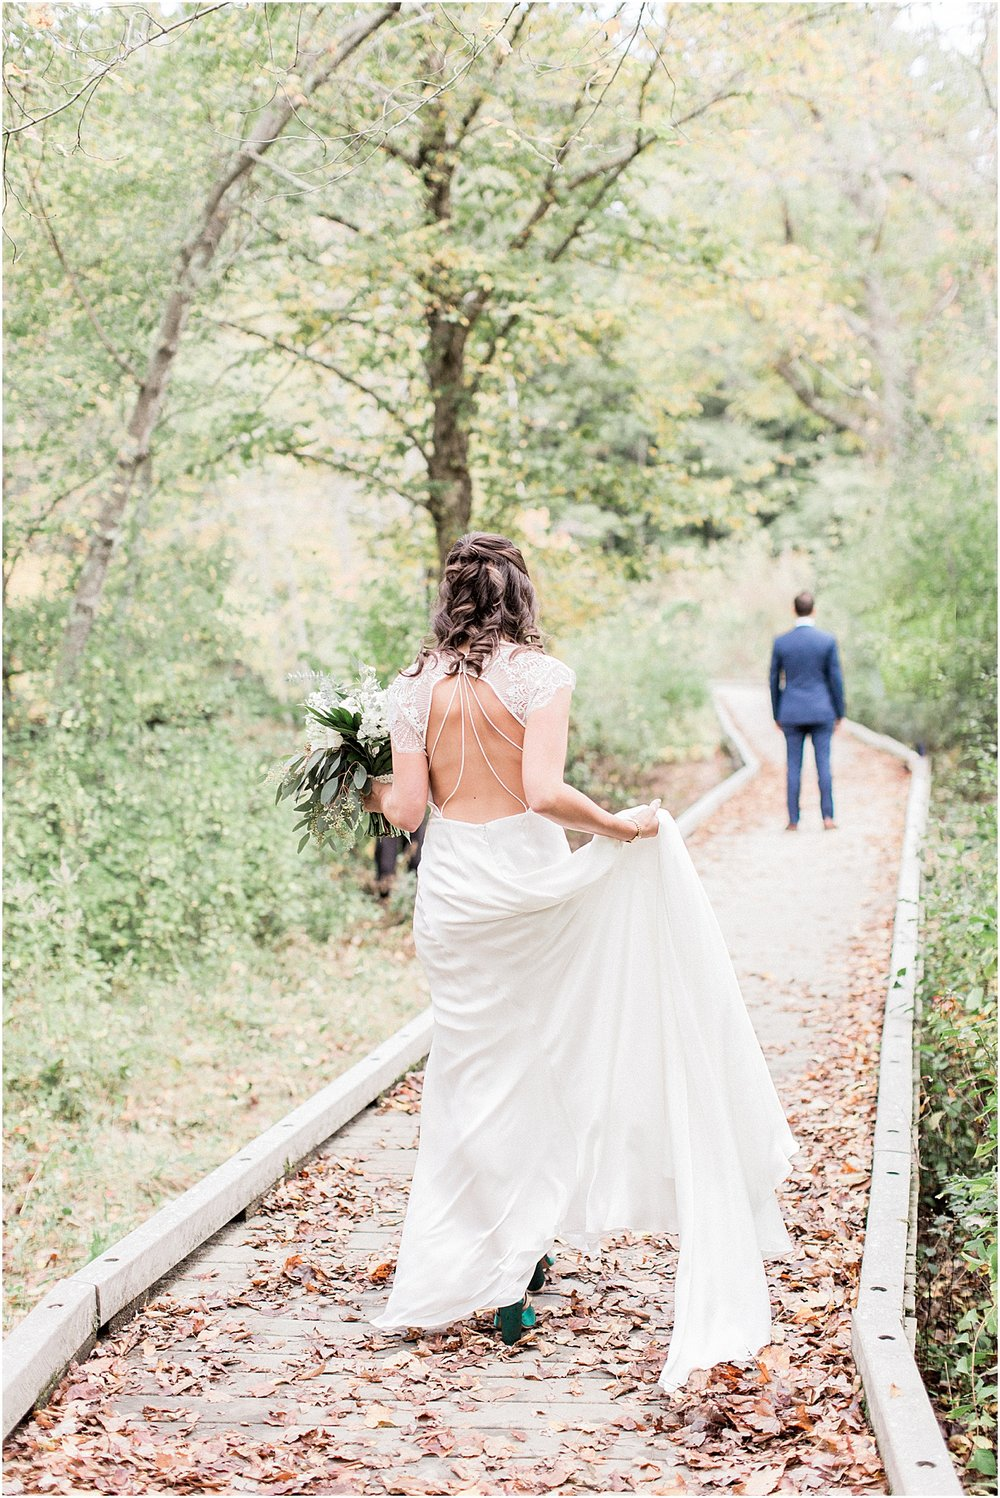 jenna_mike_willowdale_estate_topsfield_neutral_whites_greens_fall_cape_cod_boston_wedding_photographer_meredith_jane_photography_photo_1473.jpg